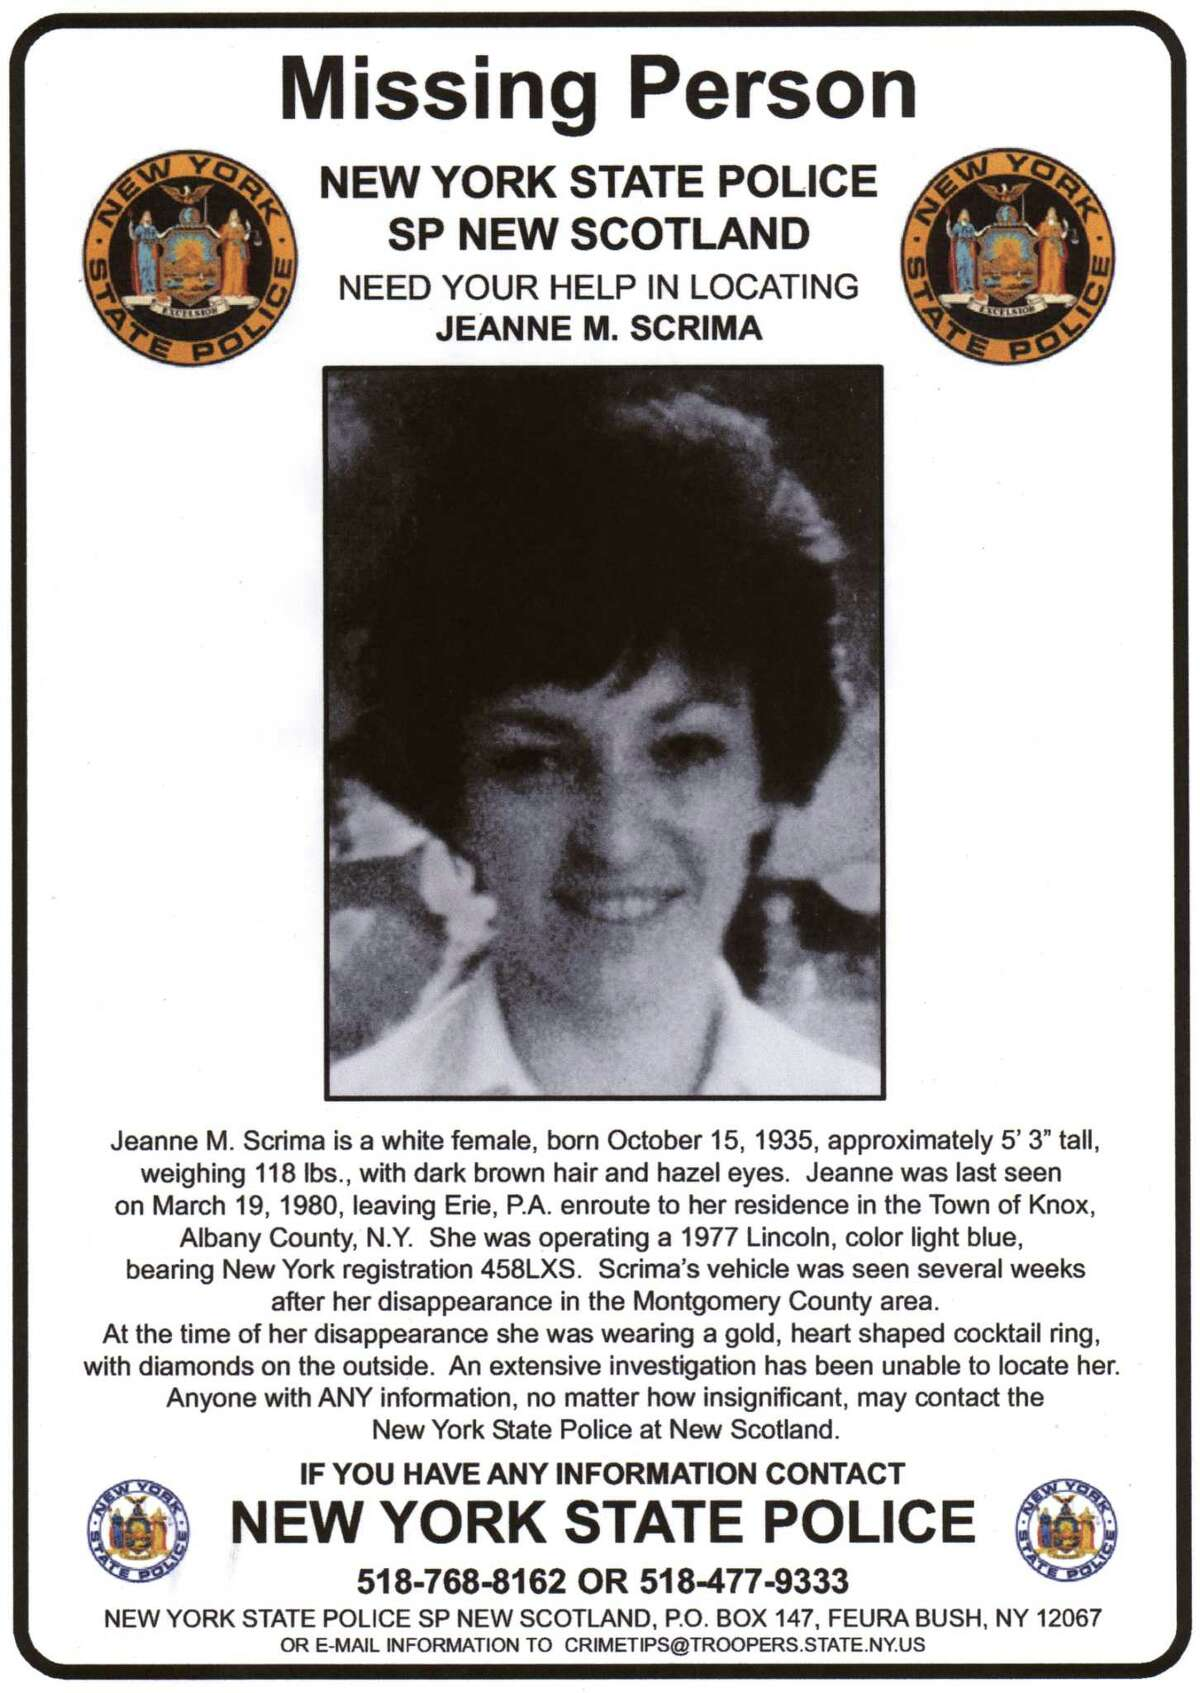 Hand out photo of NYS Police Missing Person poster for Jeanne M. Scrima.